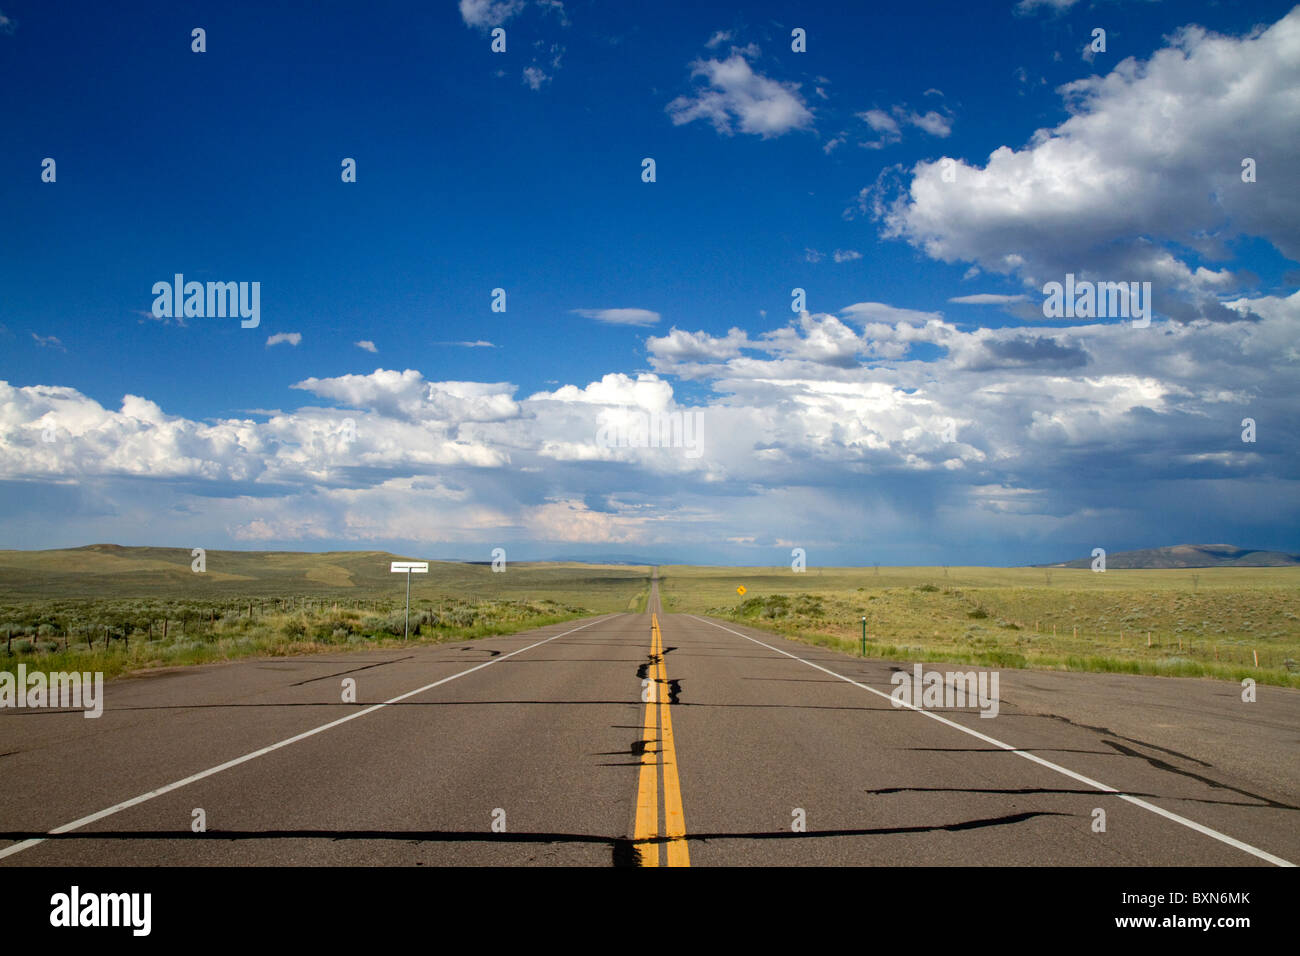 Open road on U.S. Route 40 in western Colorado, USA. - Stock Image